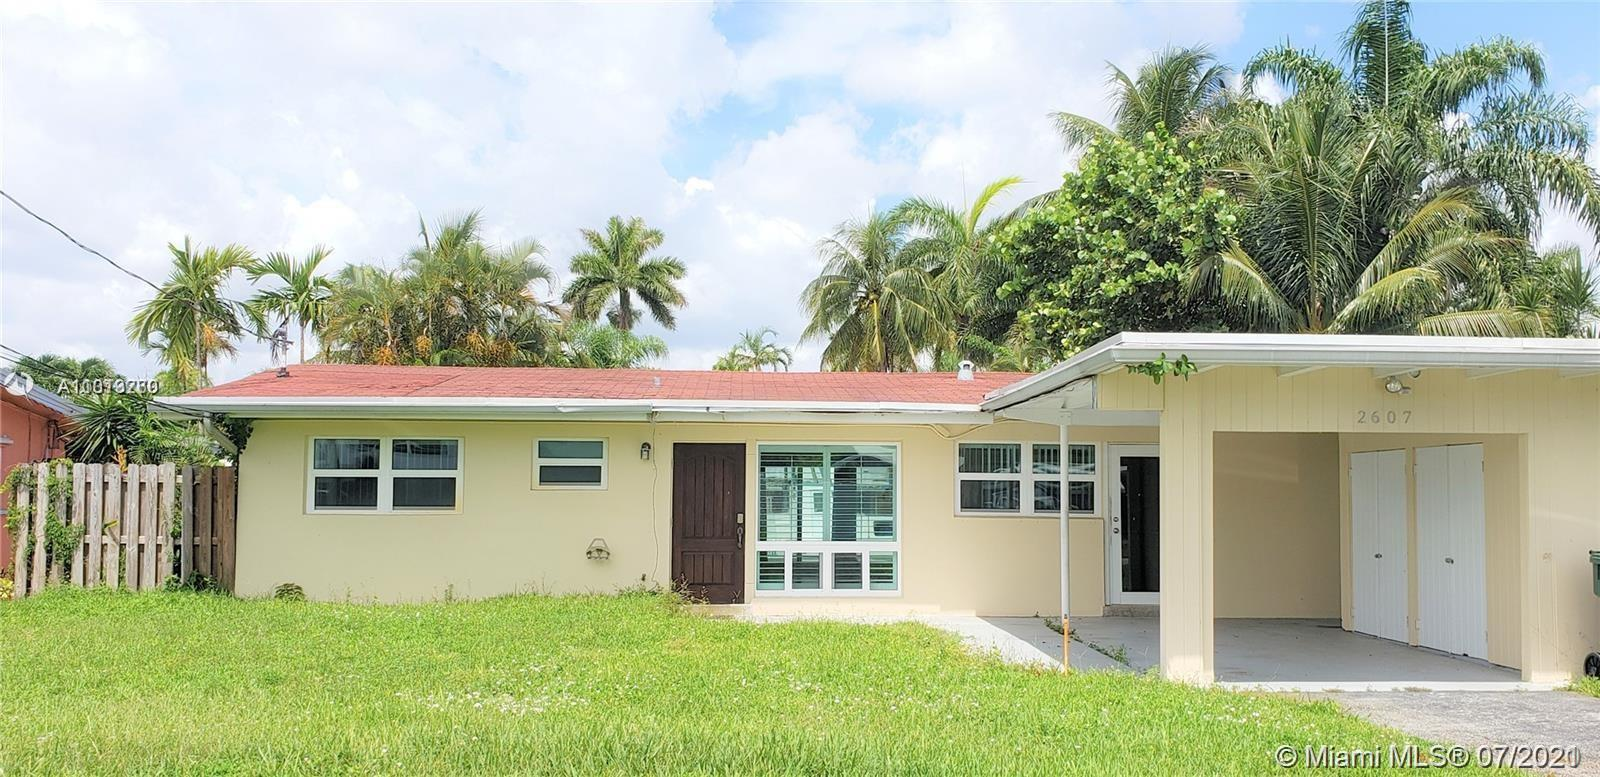 Property for sale at 2607 Flamingo Ln, Fort Lauderdale,  Florida 33312